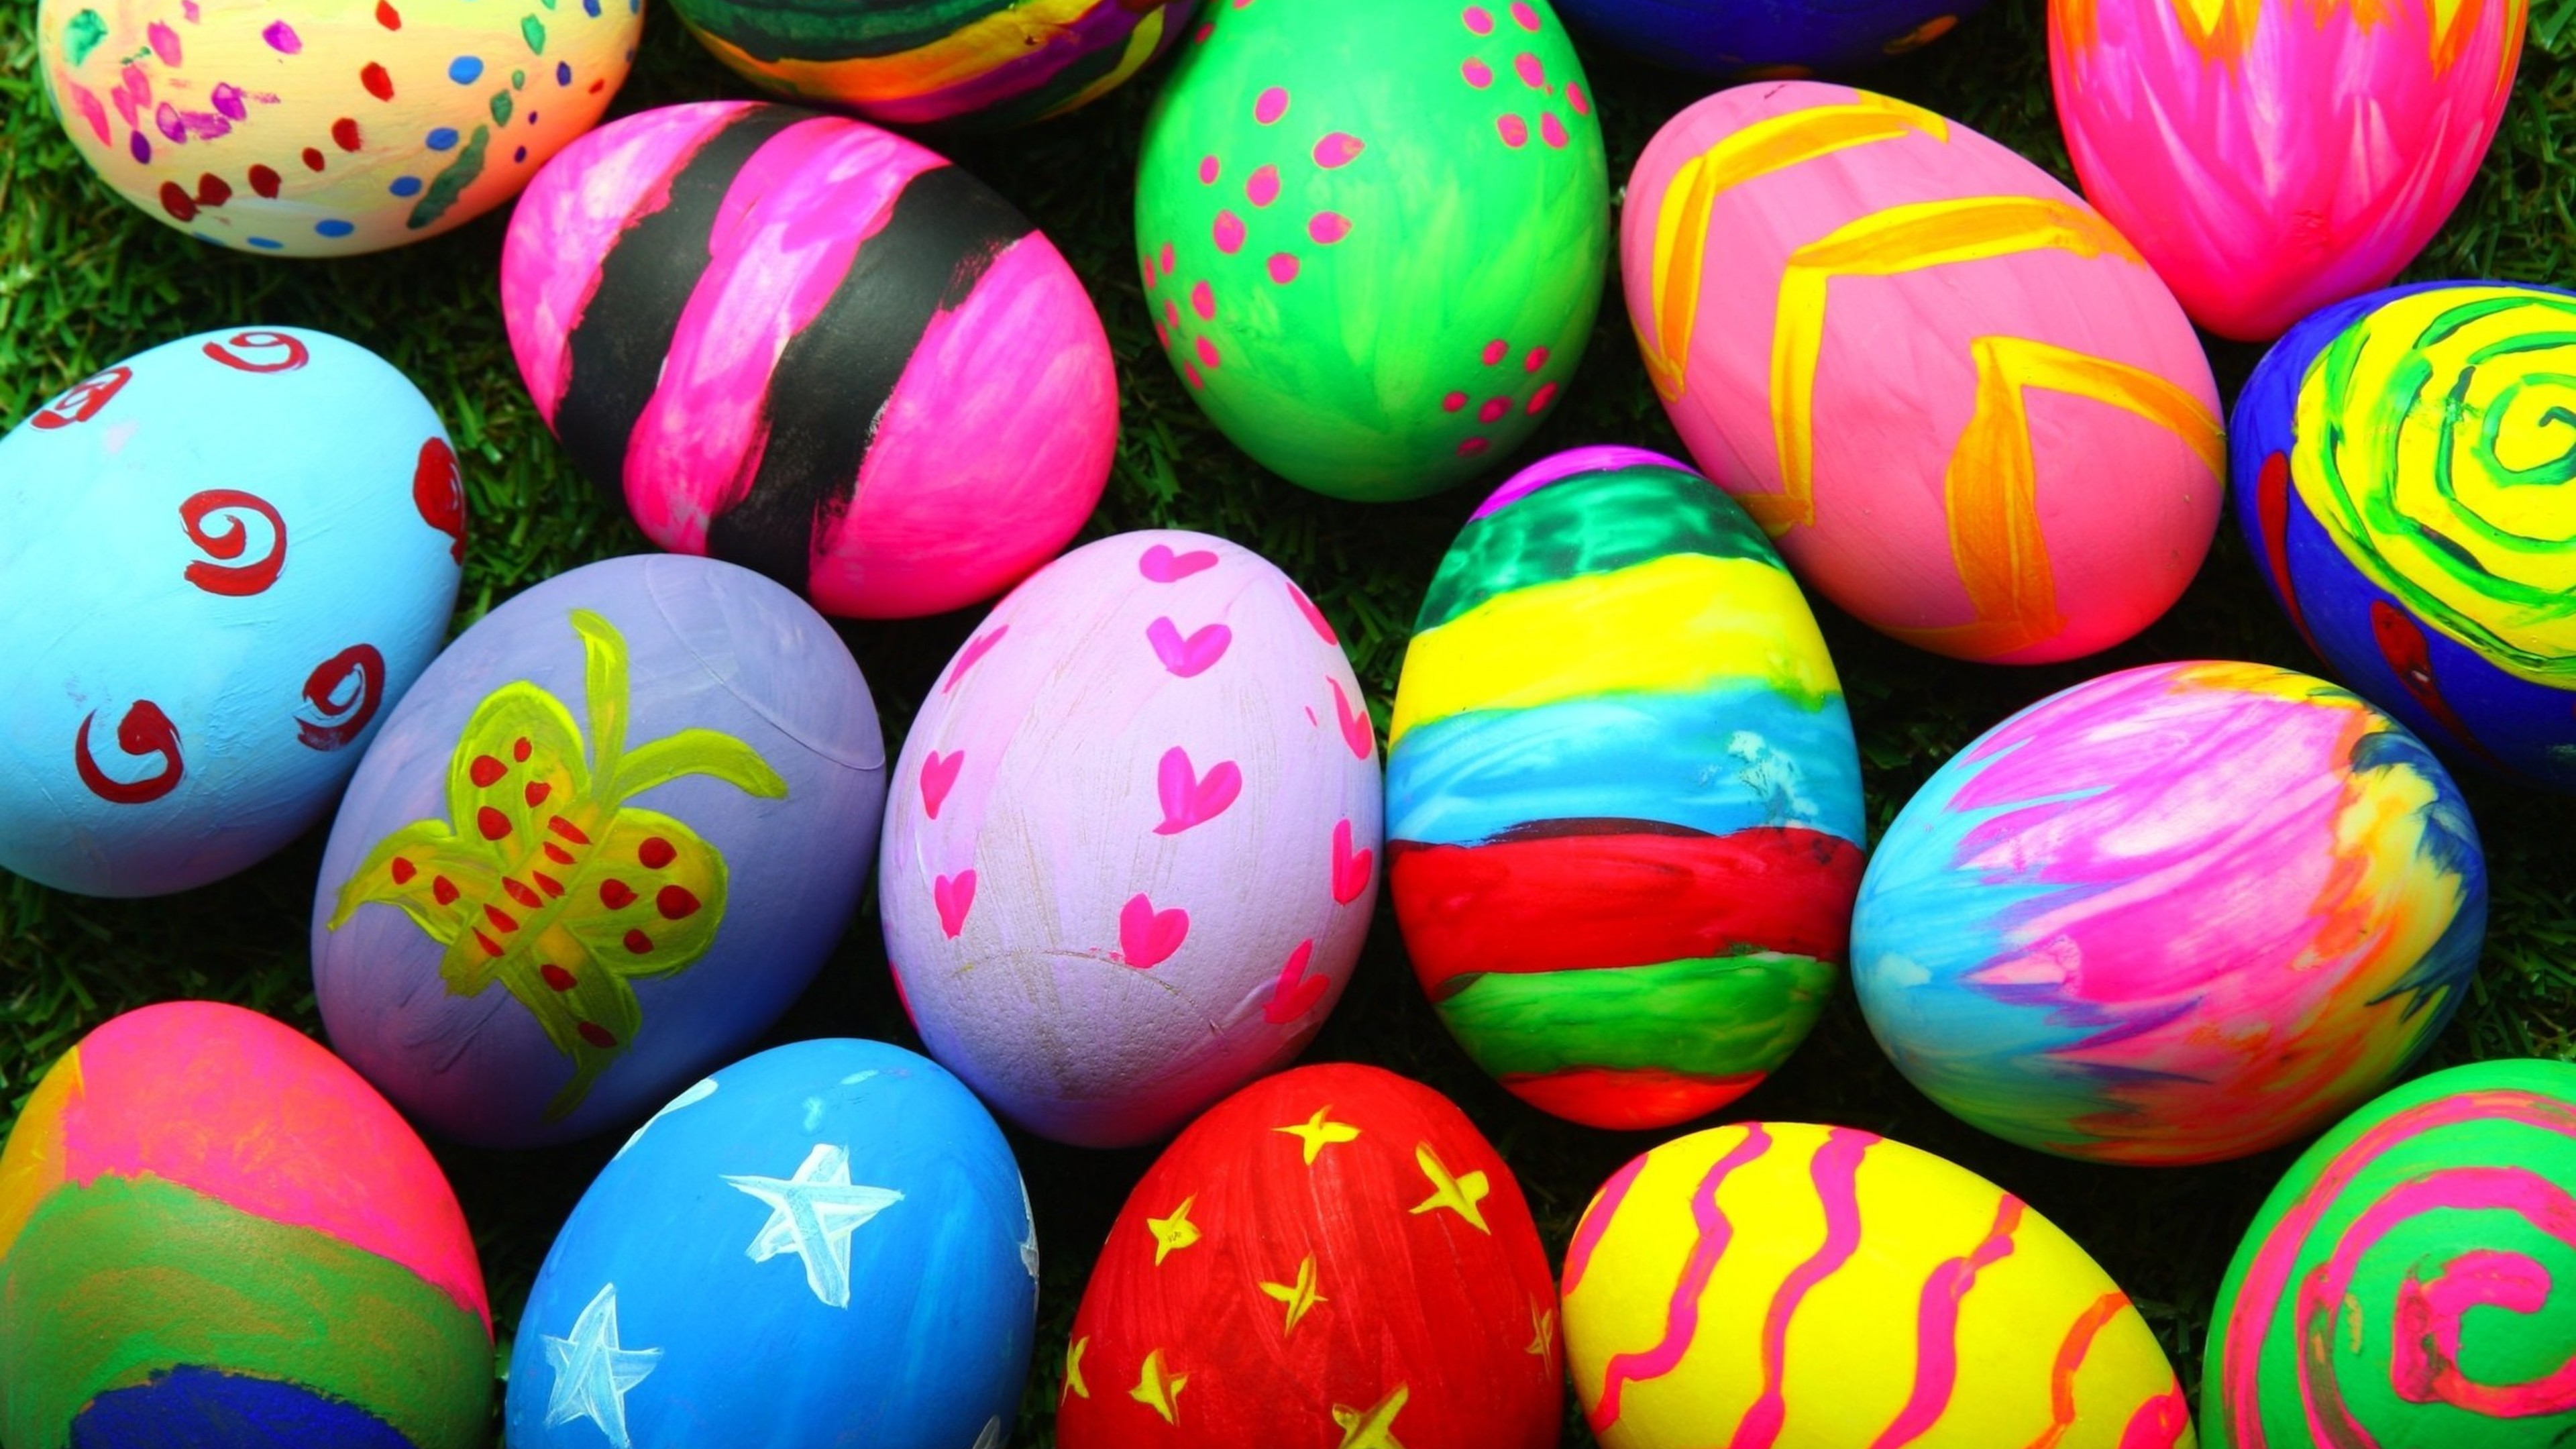 3840x2160  Colorful Easter Eggs